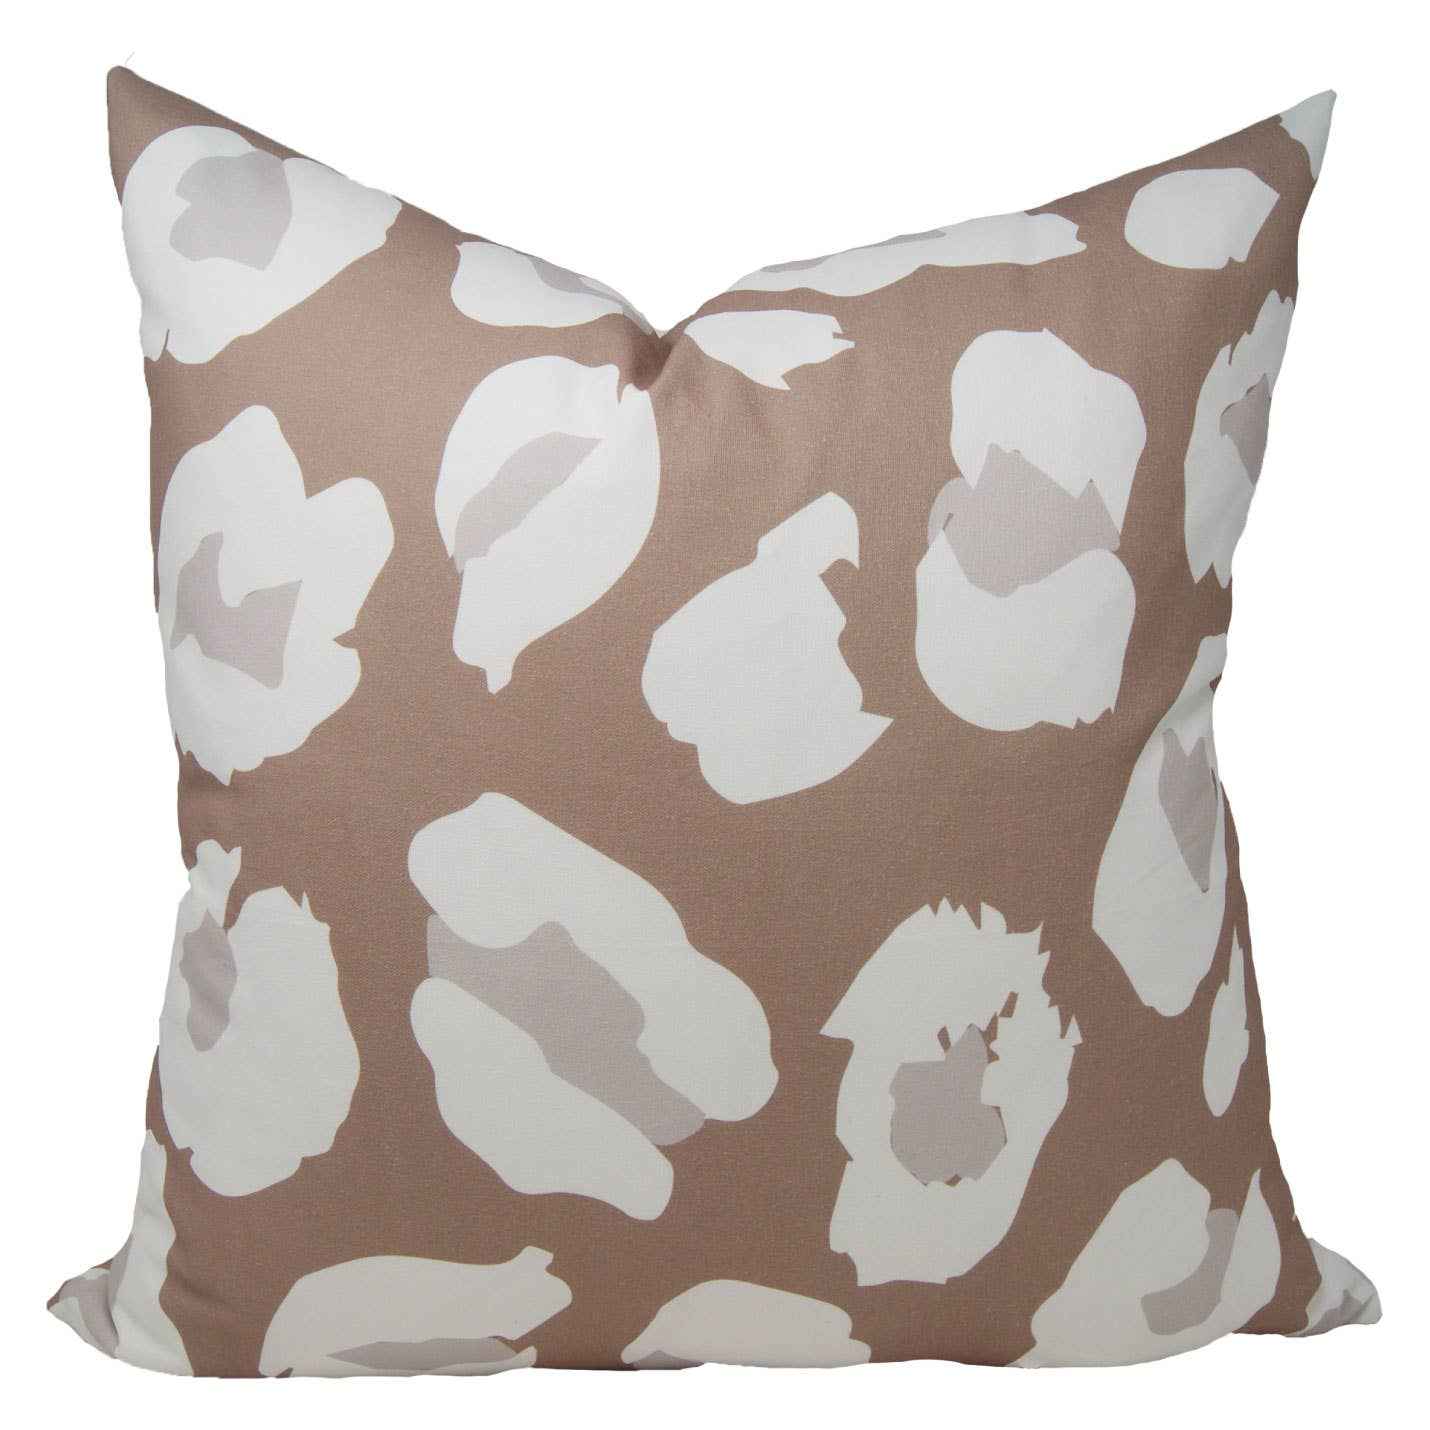 Leopold Pillow in Greige